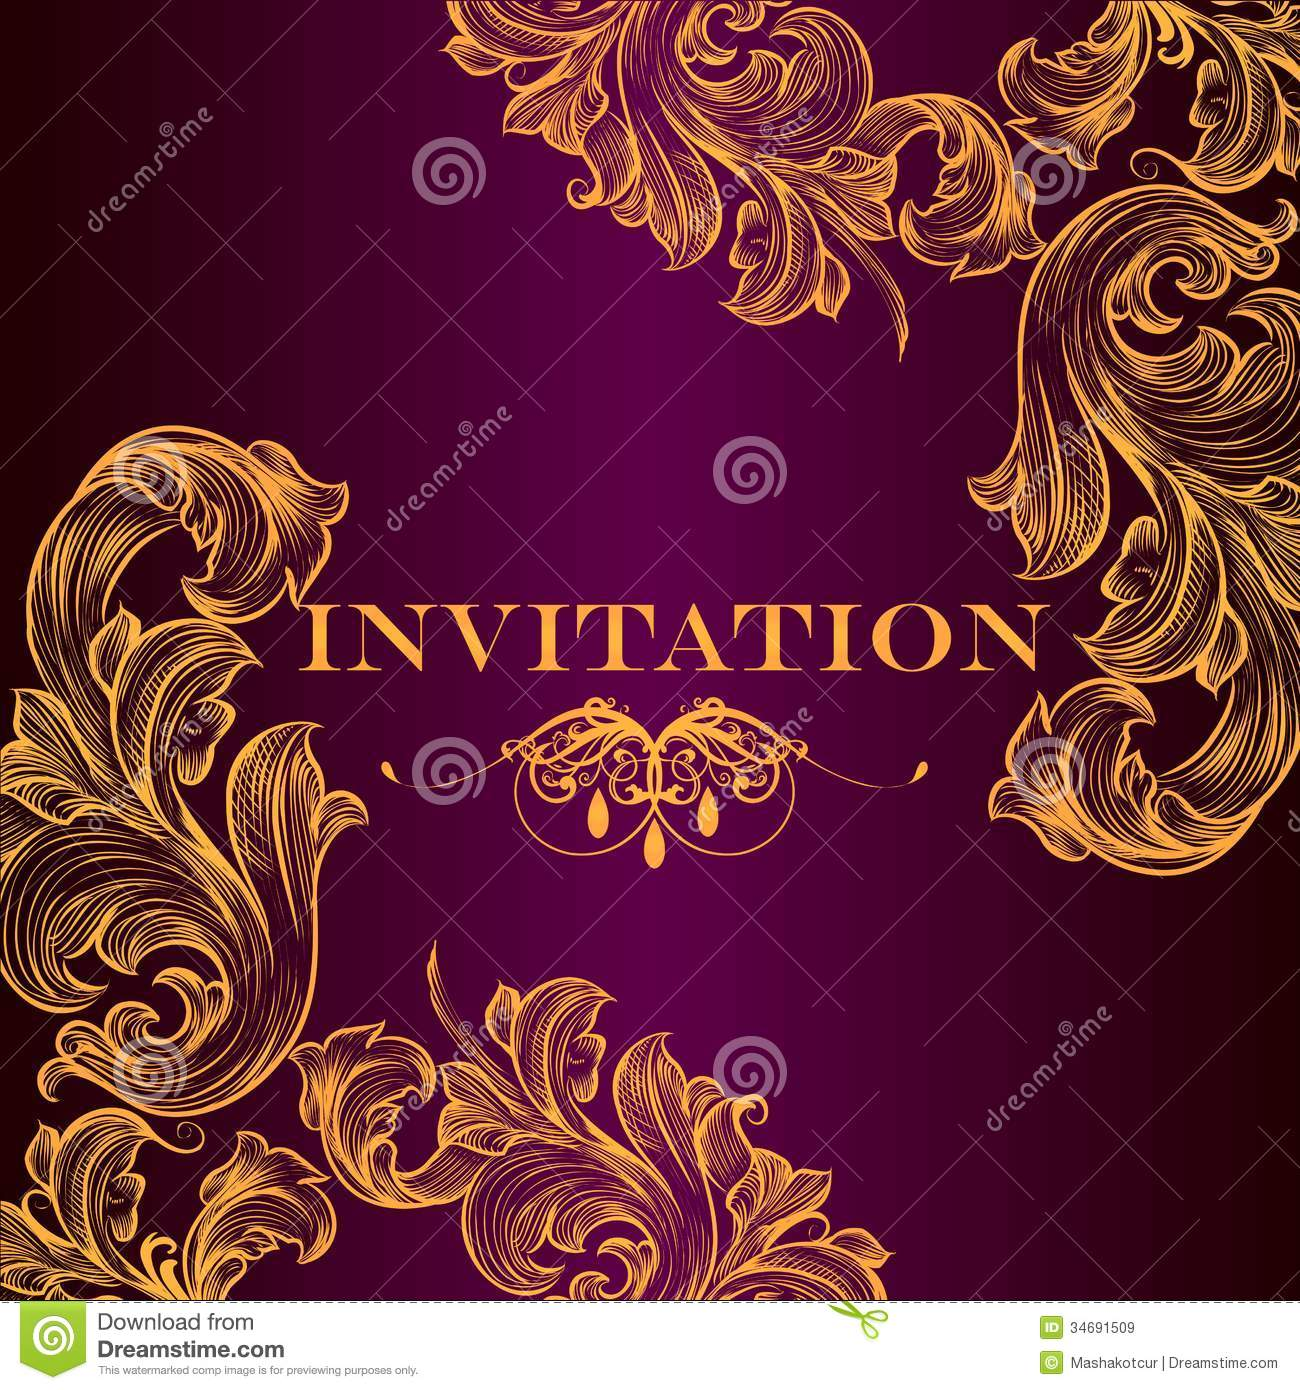 Wedding Scroll Invitations is awesome invitation ideas